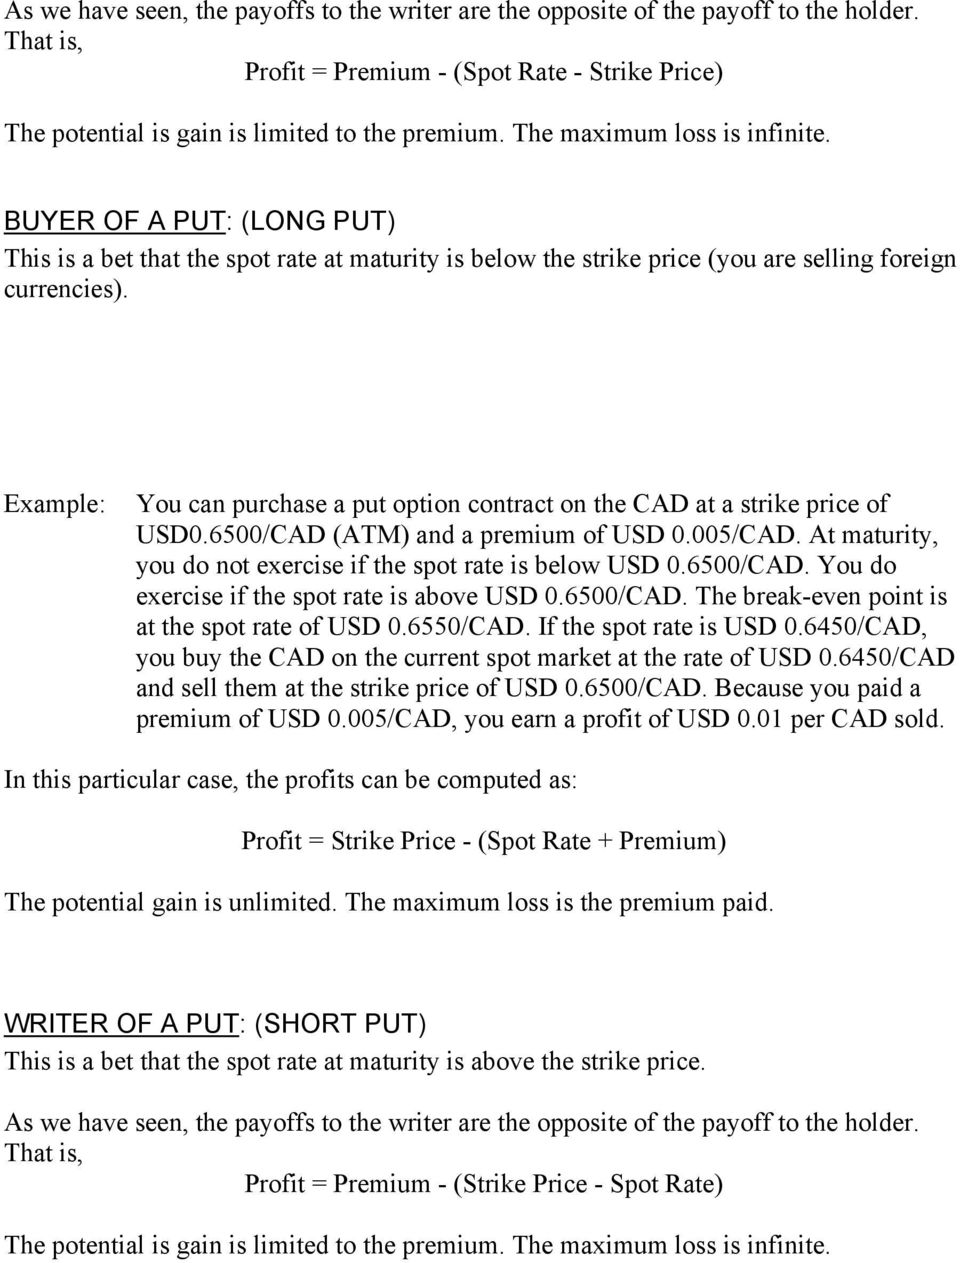 Example: You can purchase a put option contract on the CAD at a strike price of USD0.6500/CAD (AM) and a premium of USD 0.005/CAD. At maturity, you do not exercise if the spot rate is below USD 0.